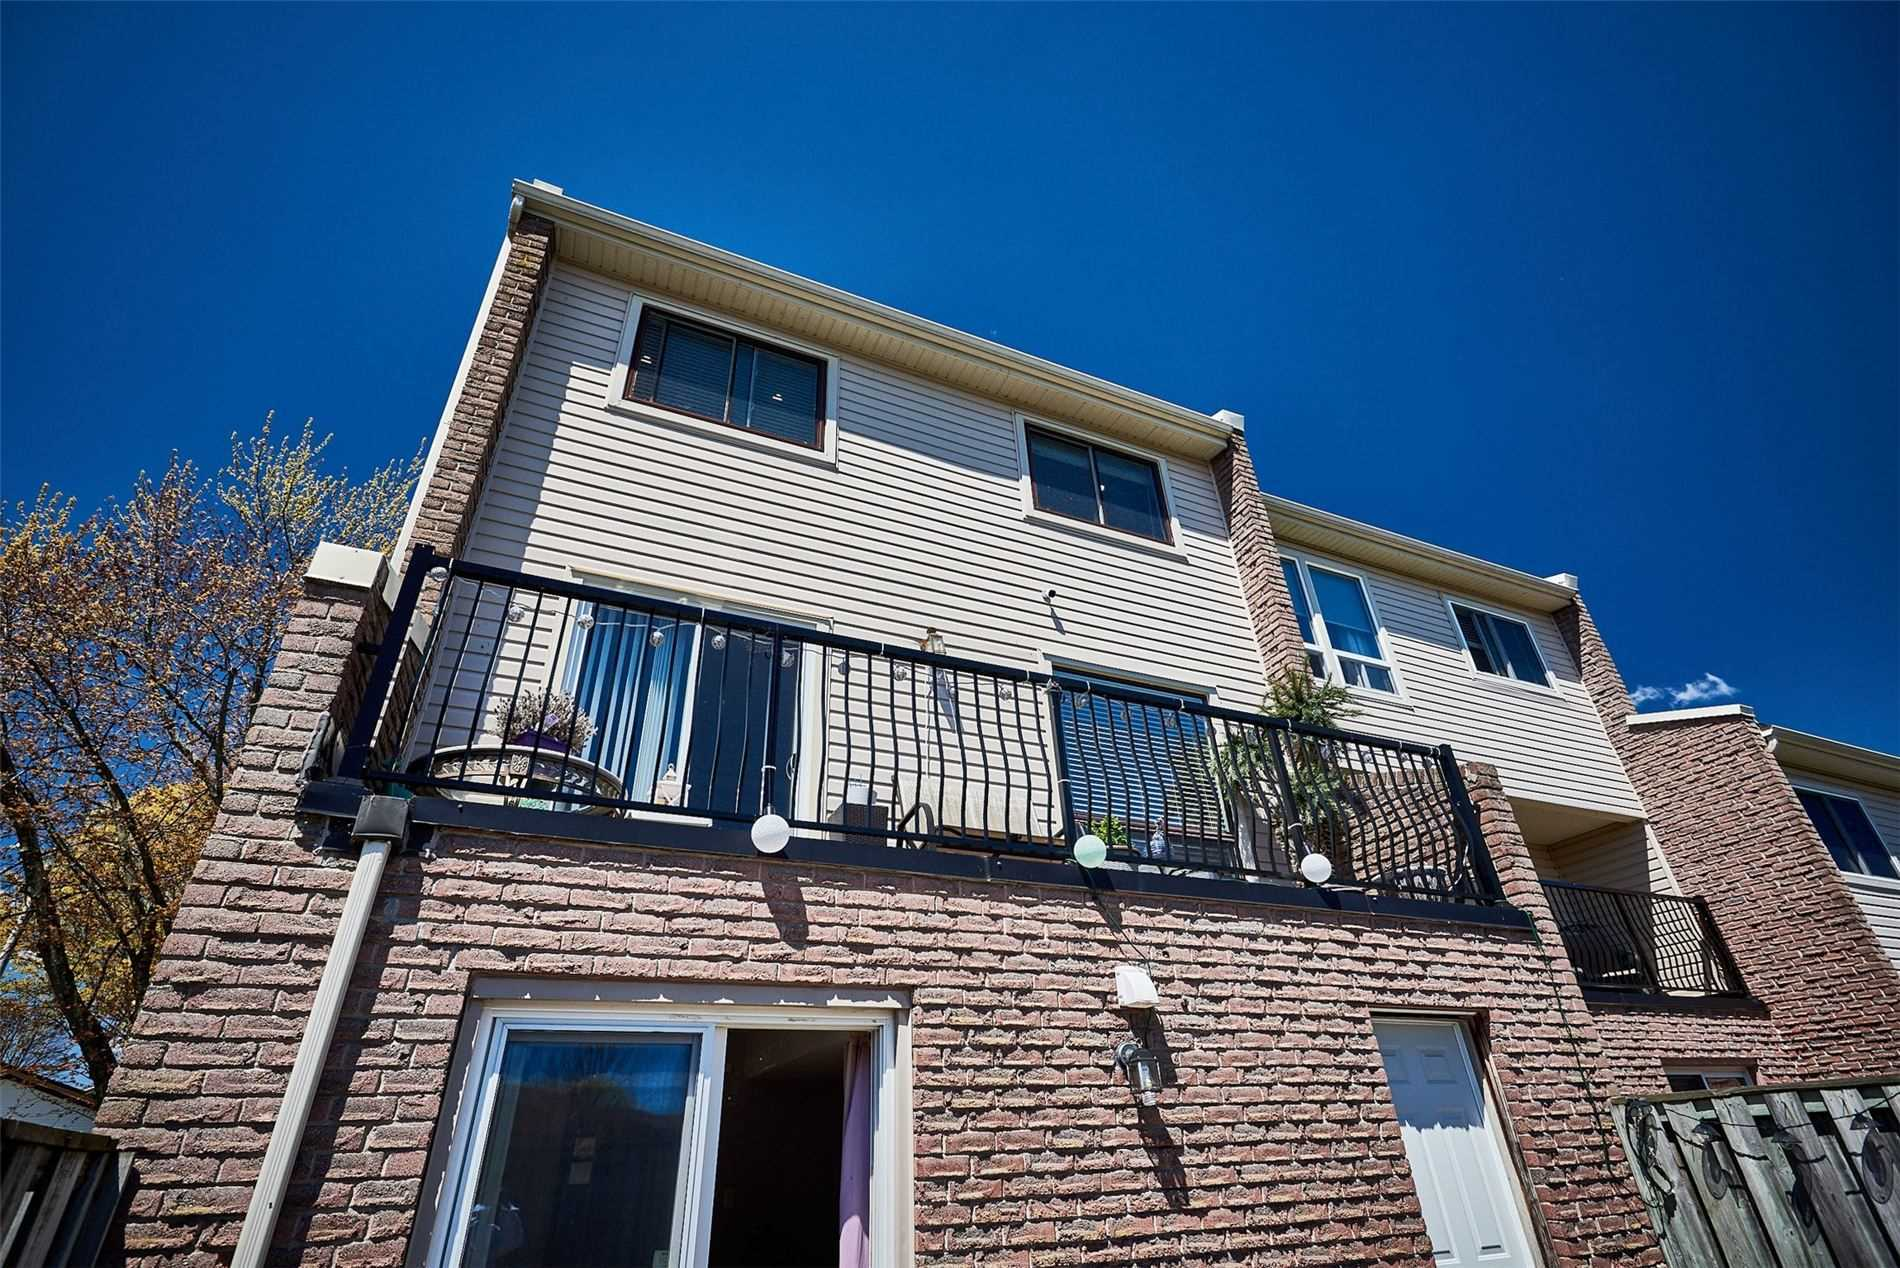 Image 21 of 33 showing inside of 3 Bedroom Condo Townhouse 2-Storey for Sale at 33 Clover Ridge Dr W Unit# 9, Ajax L1S3M5